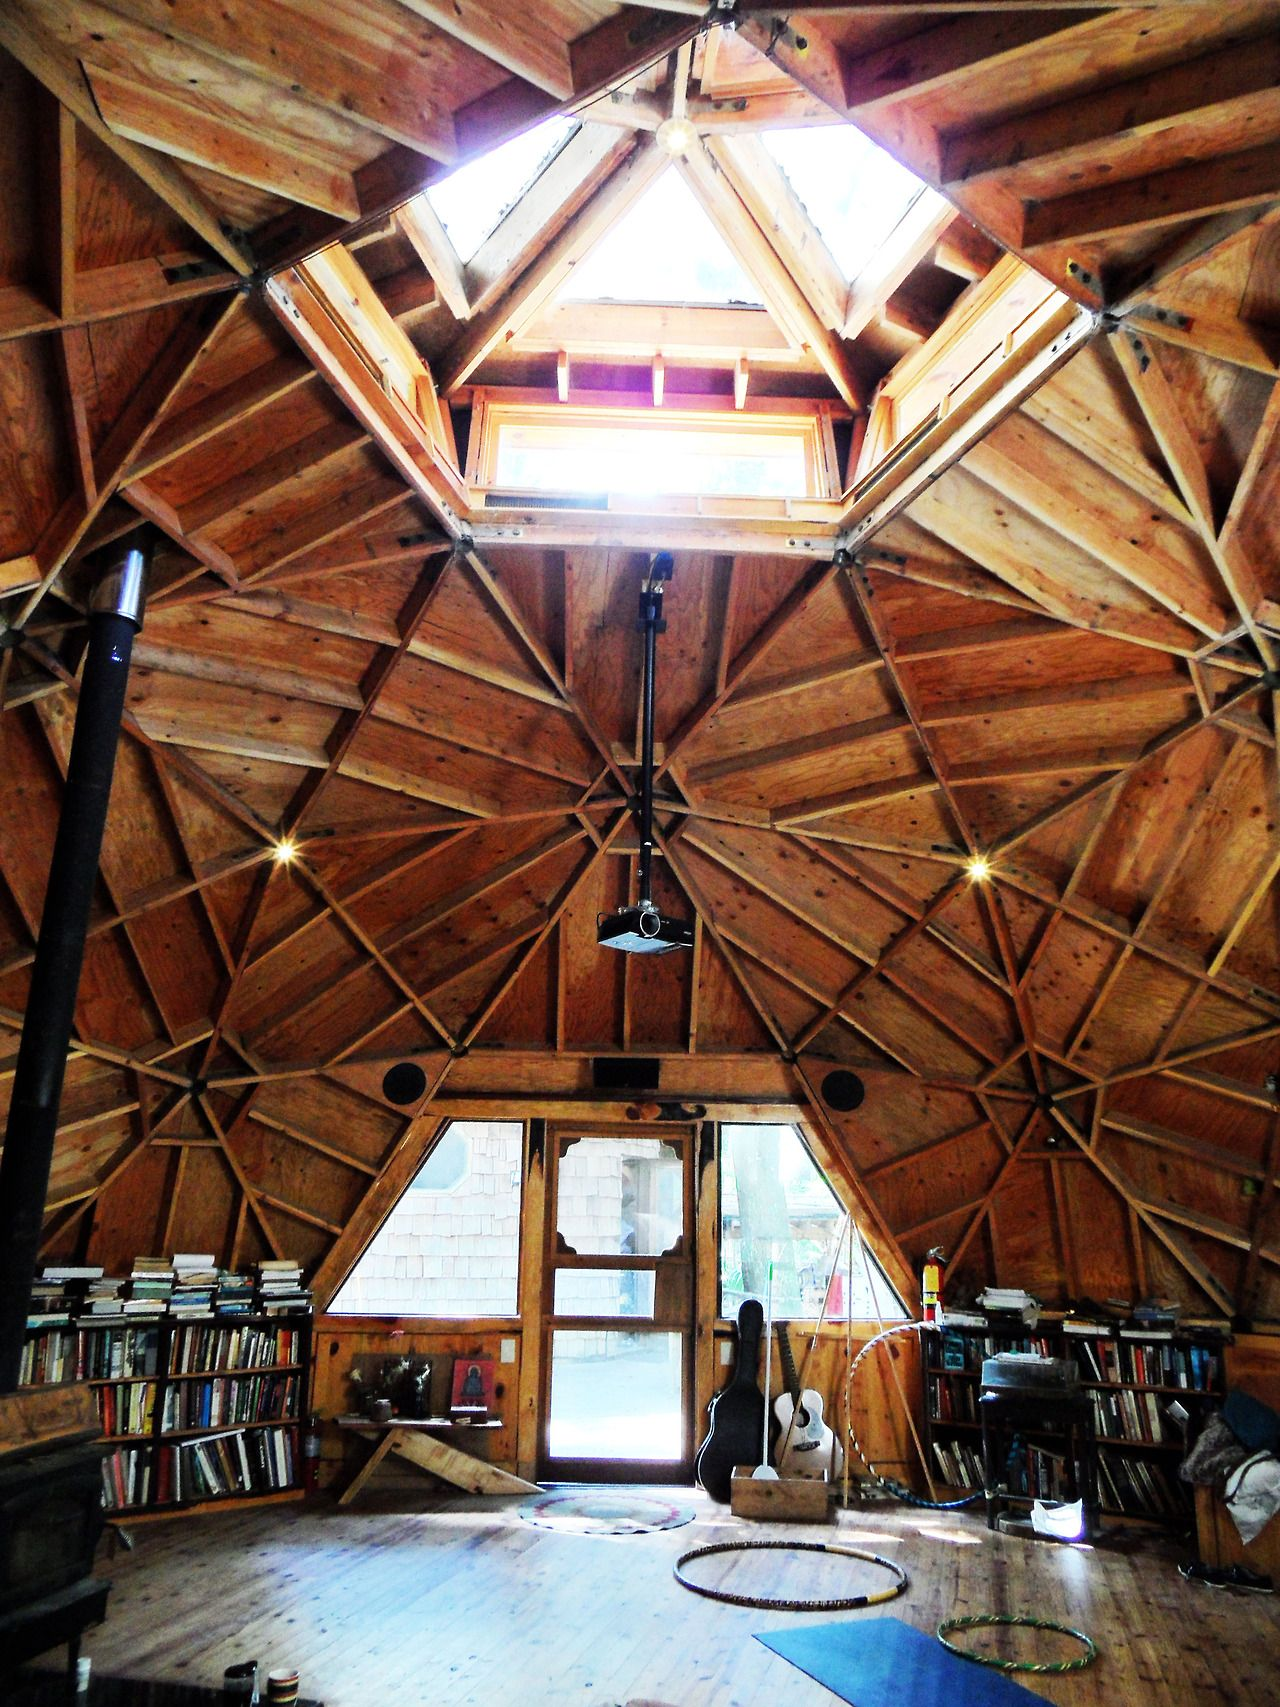 Dome Home Design Ideas: Geodesic & Homes